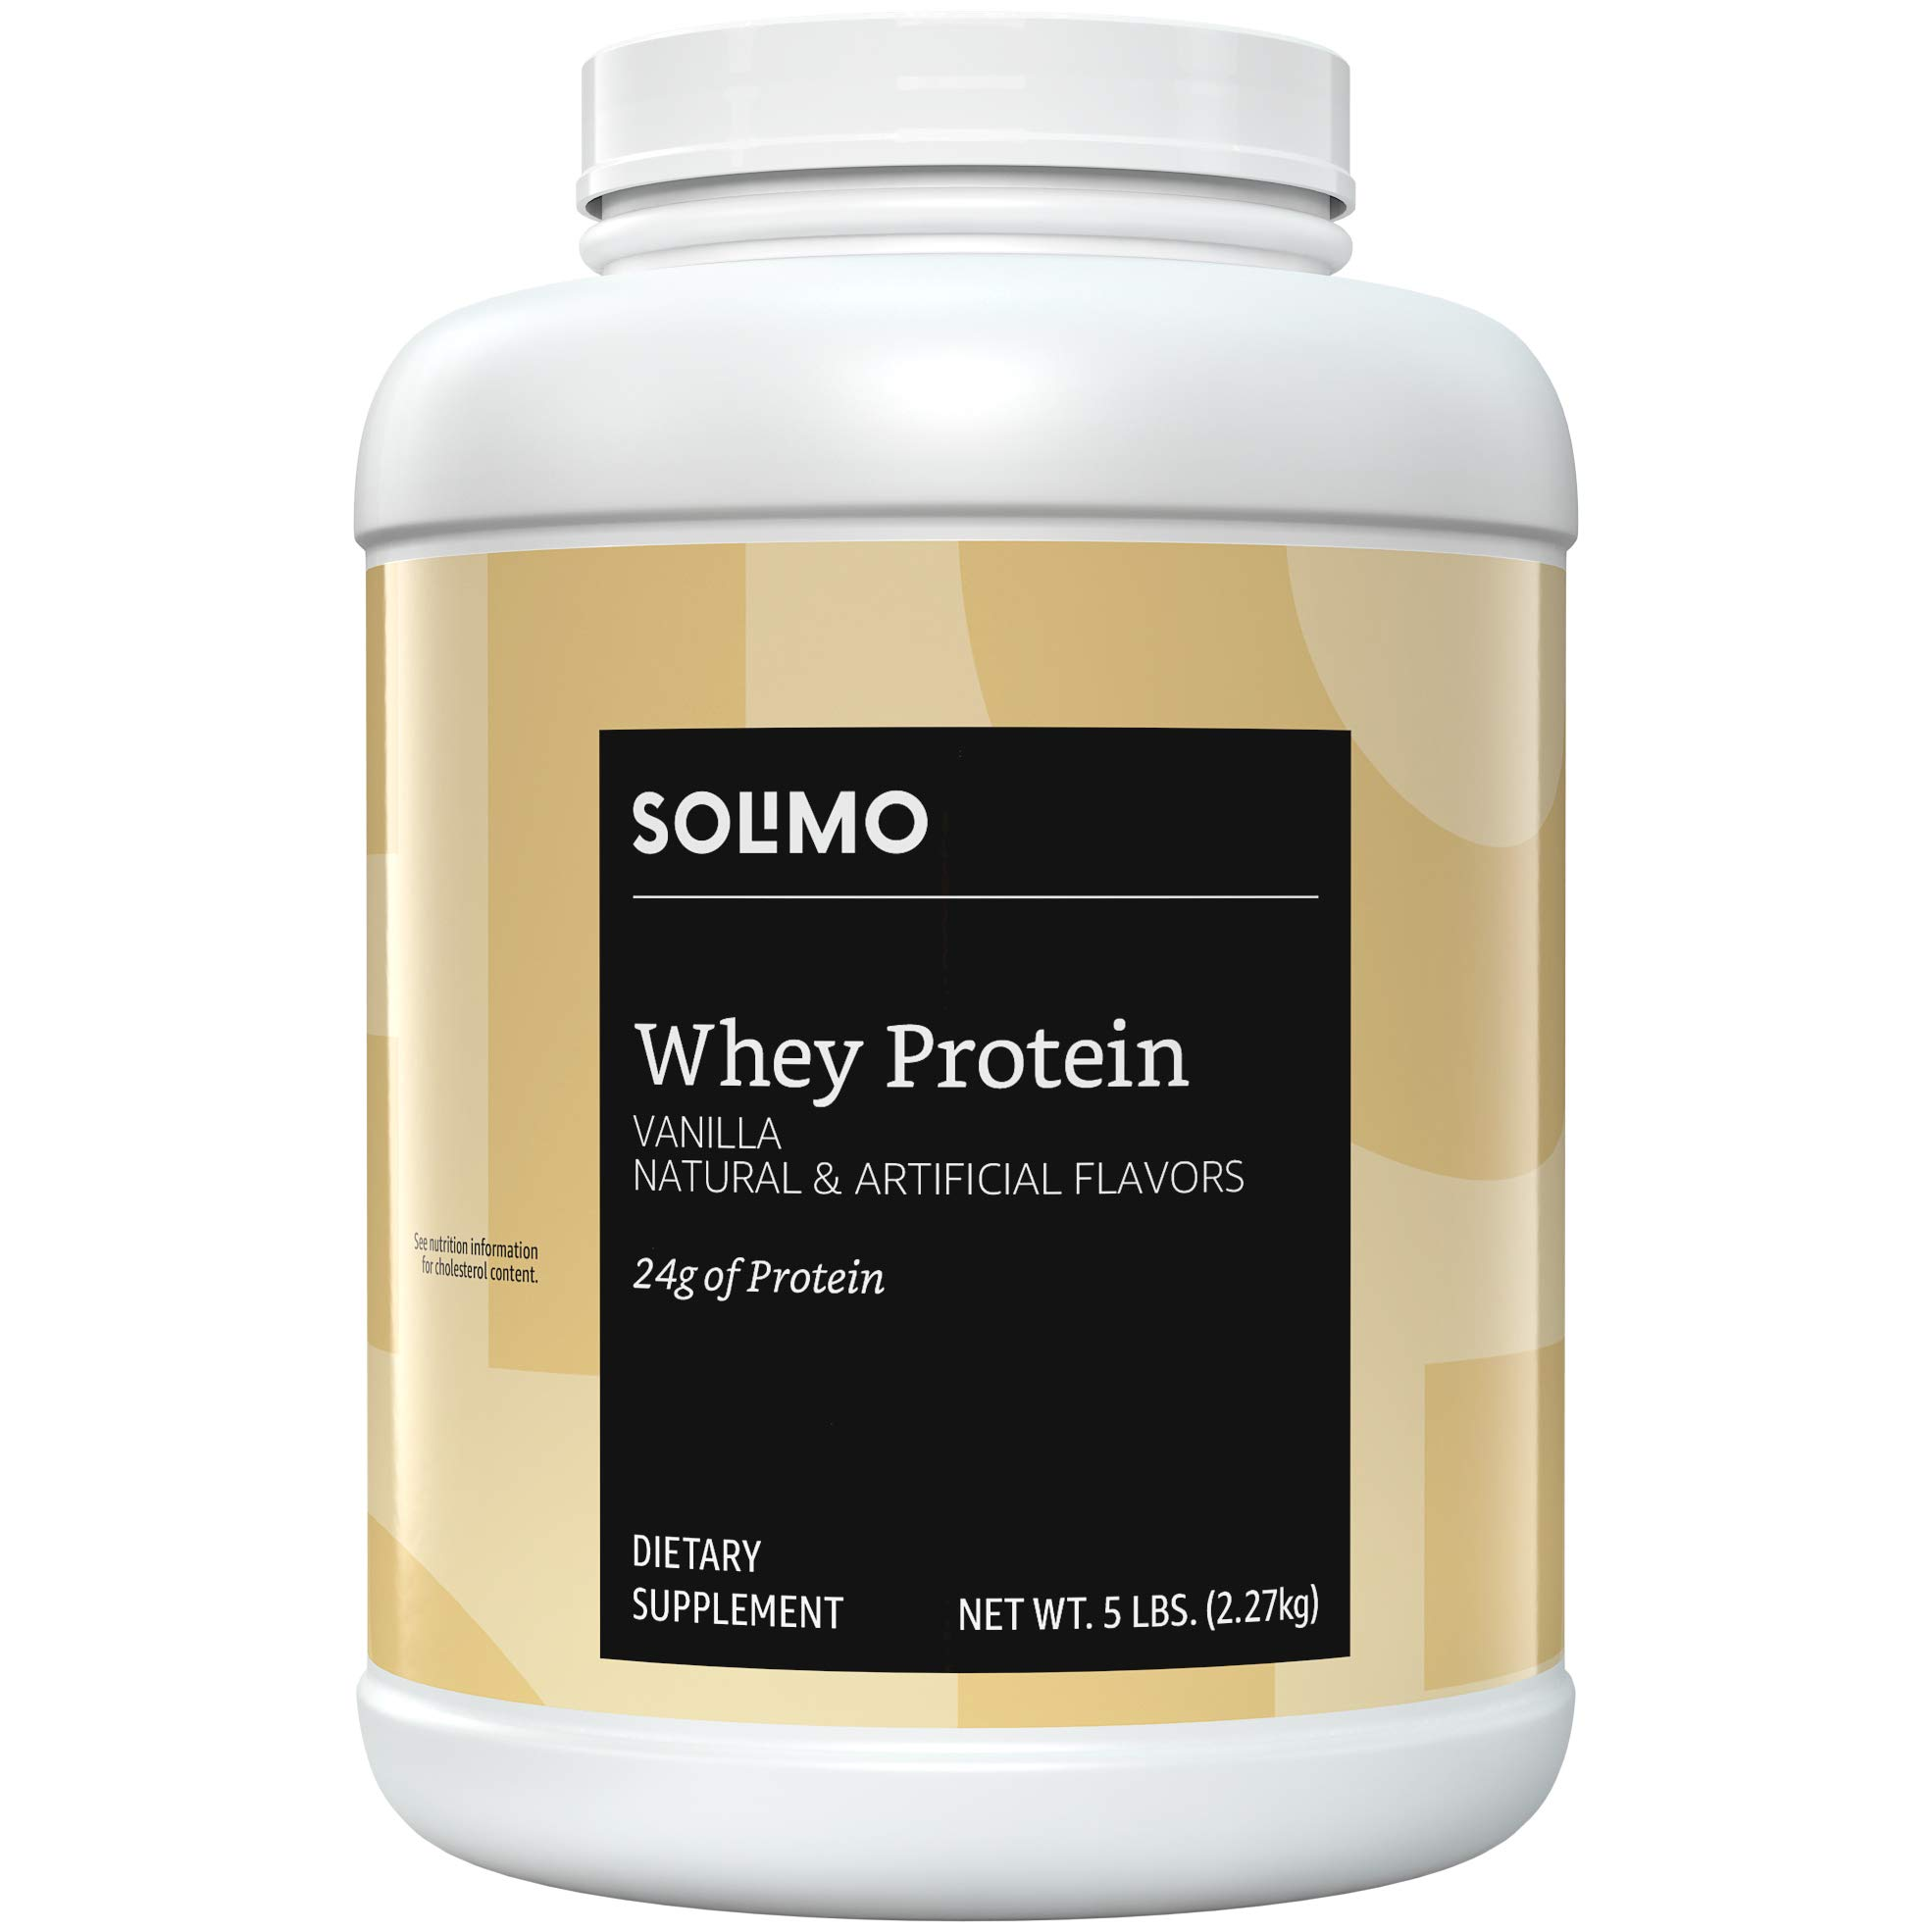 Amazon Brand - Solimo Whey Protein Powder, Vanilla, 5 Pound (57 Servings) by SOLIMO (Image #1)